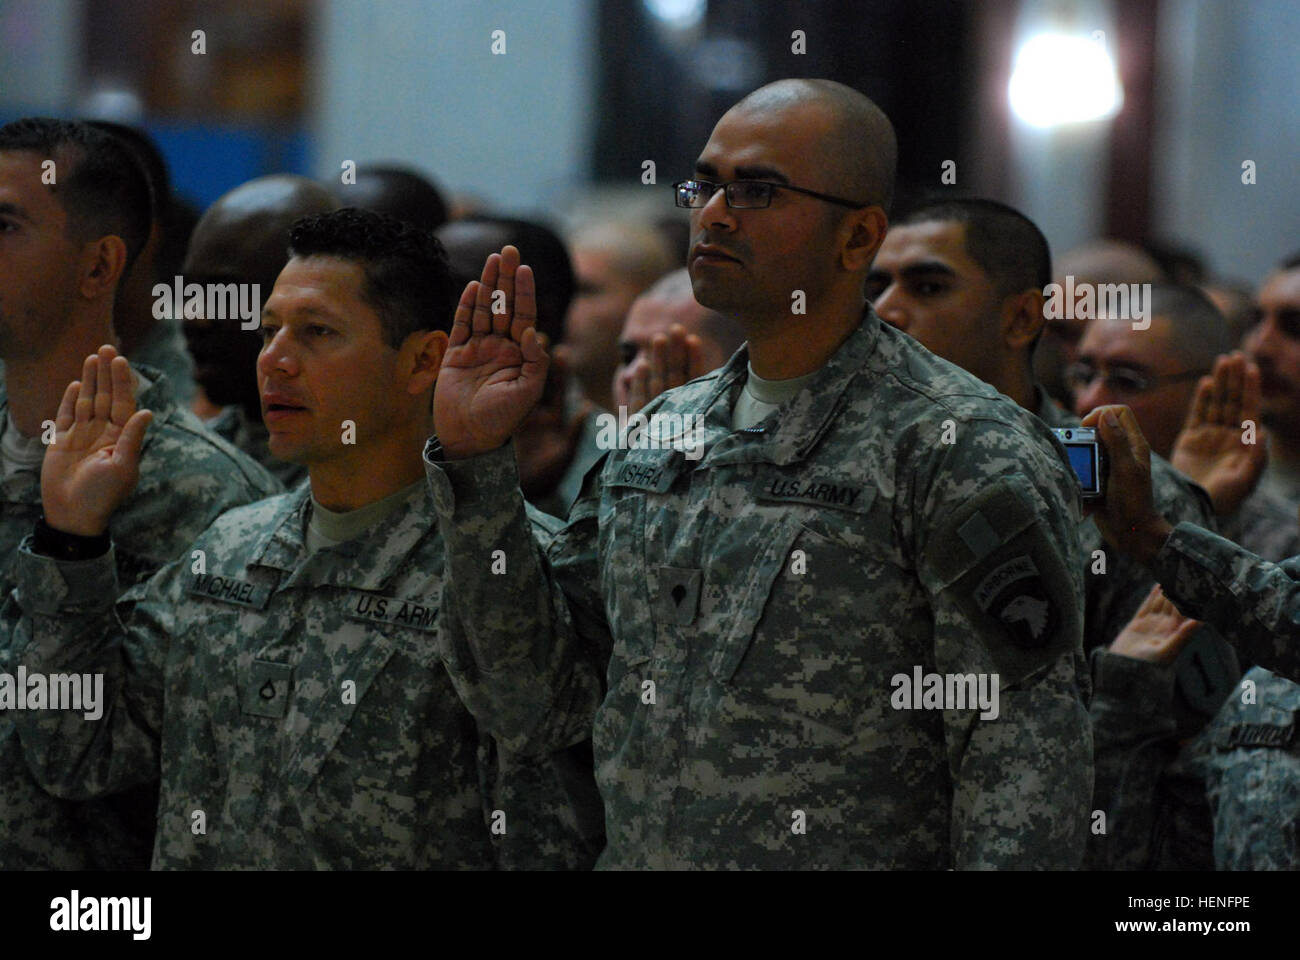 Spc. Vivek Mishra, a native of central India, raises his right hand and recites the Oath of Citizenship during a - Stock Image